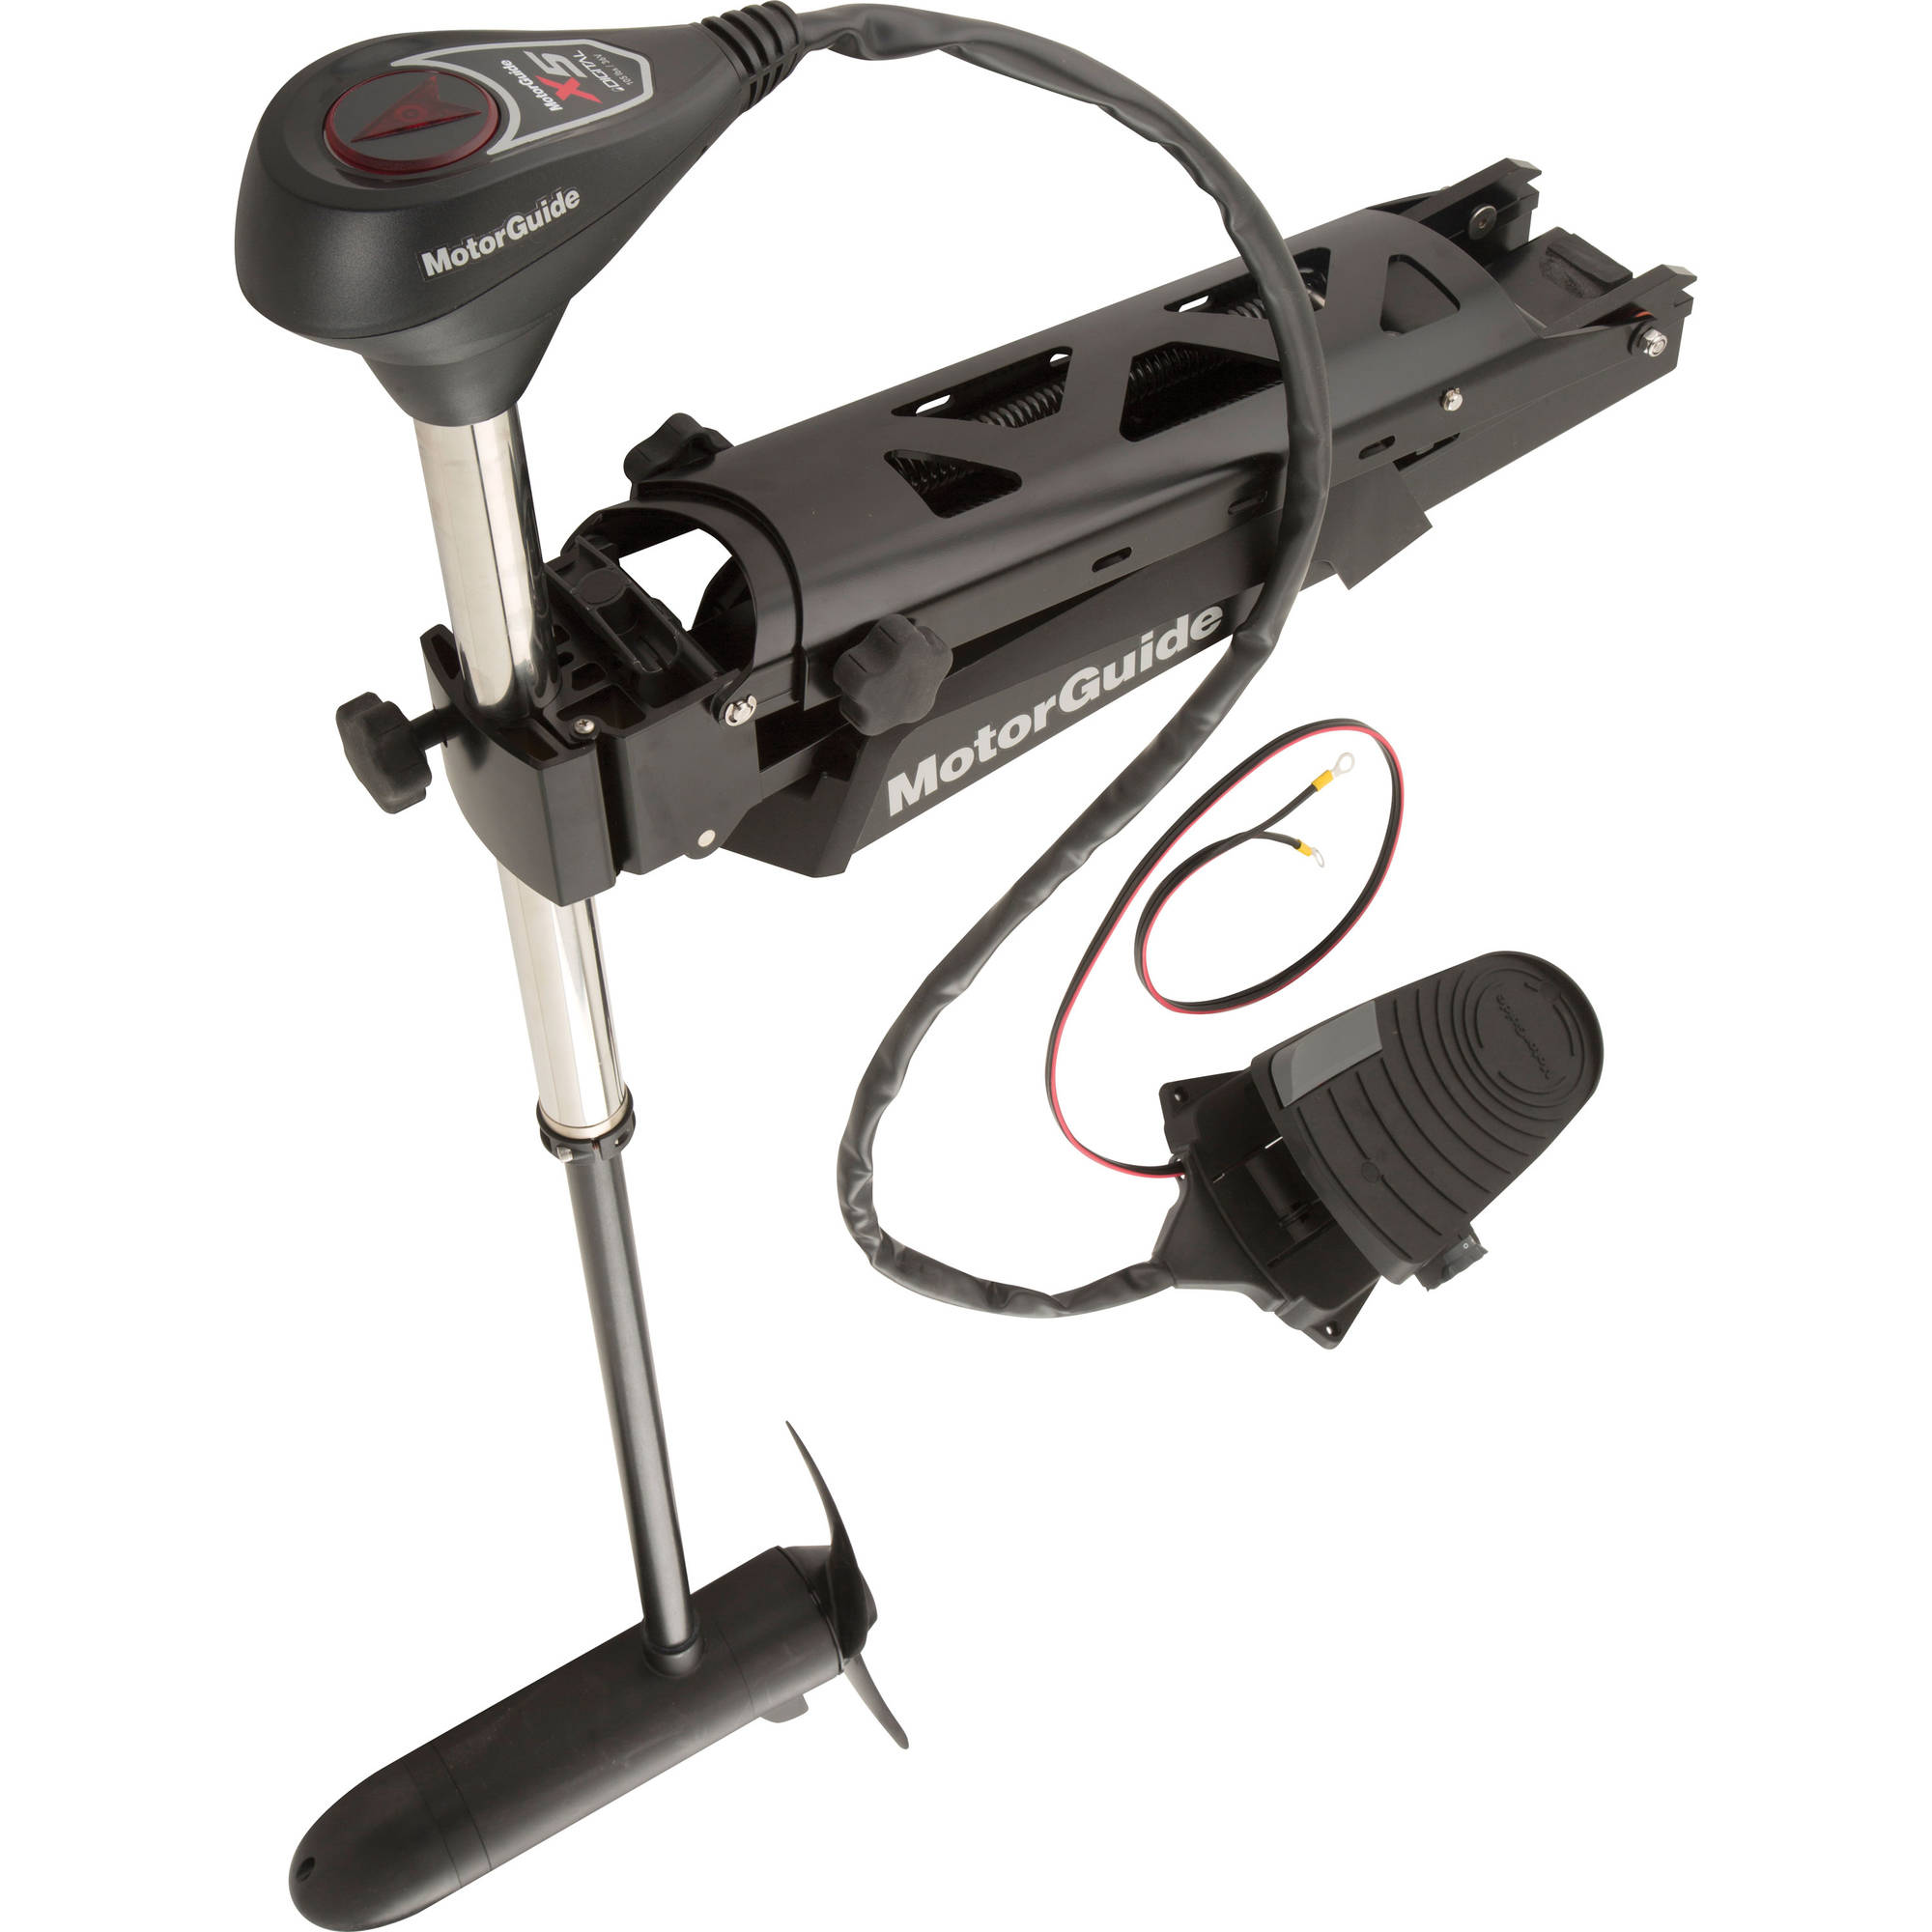 MotorGuide X5 36V Foot-Control Bow Mount Digital Variable Speed Freshwater Trolling Motor by attwood